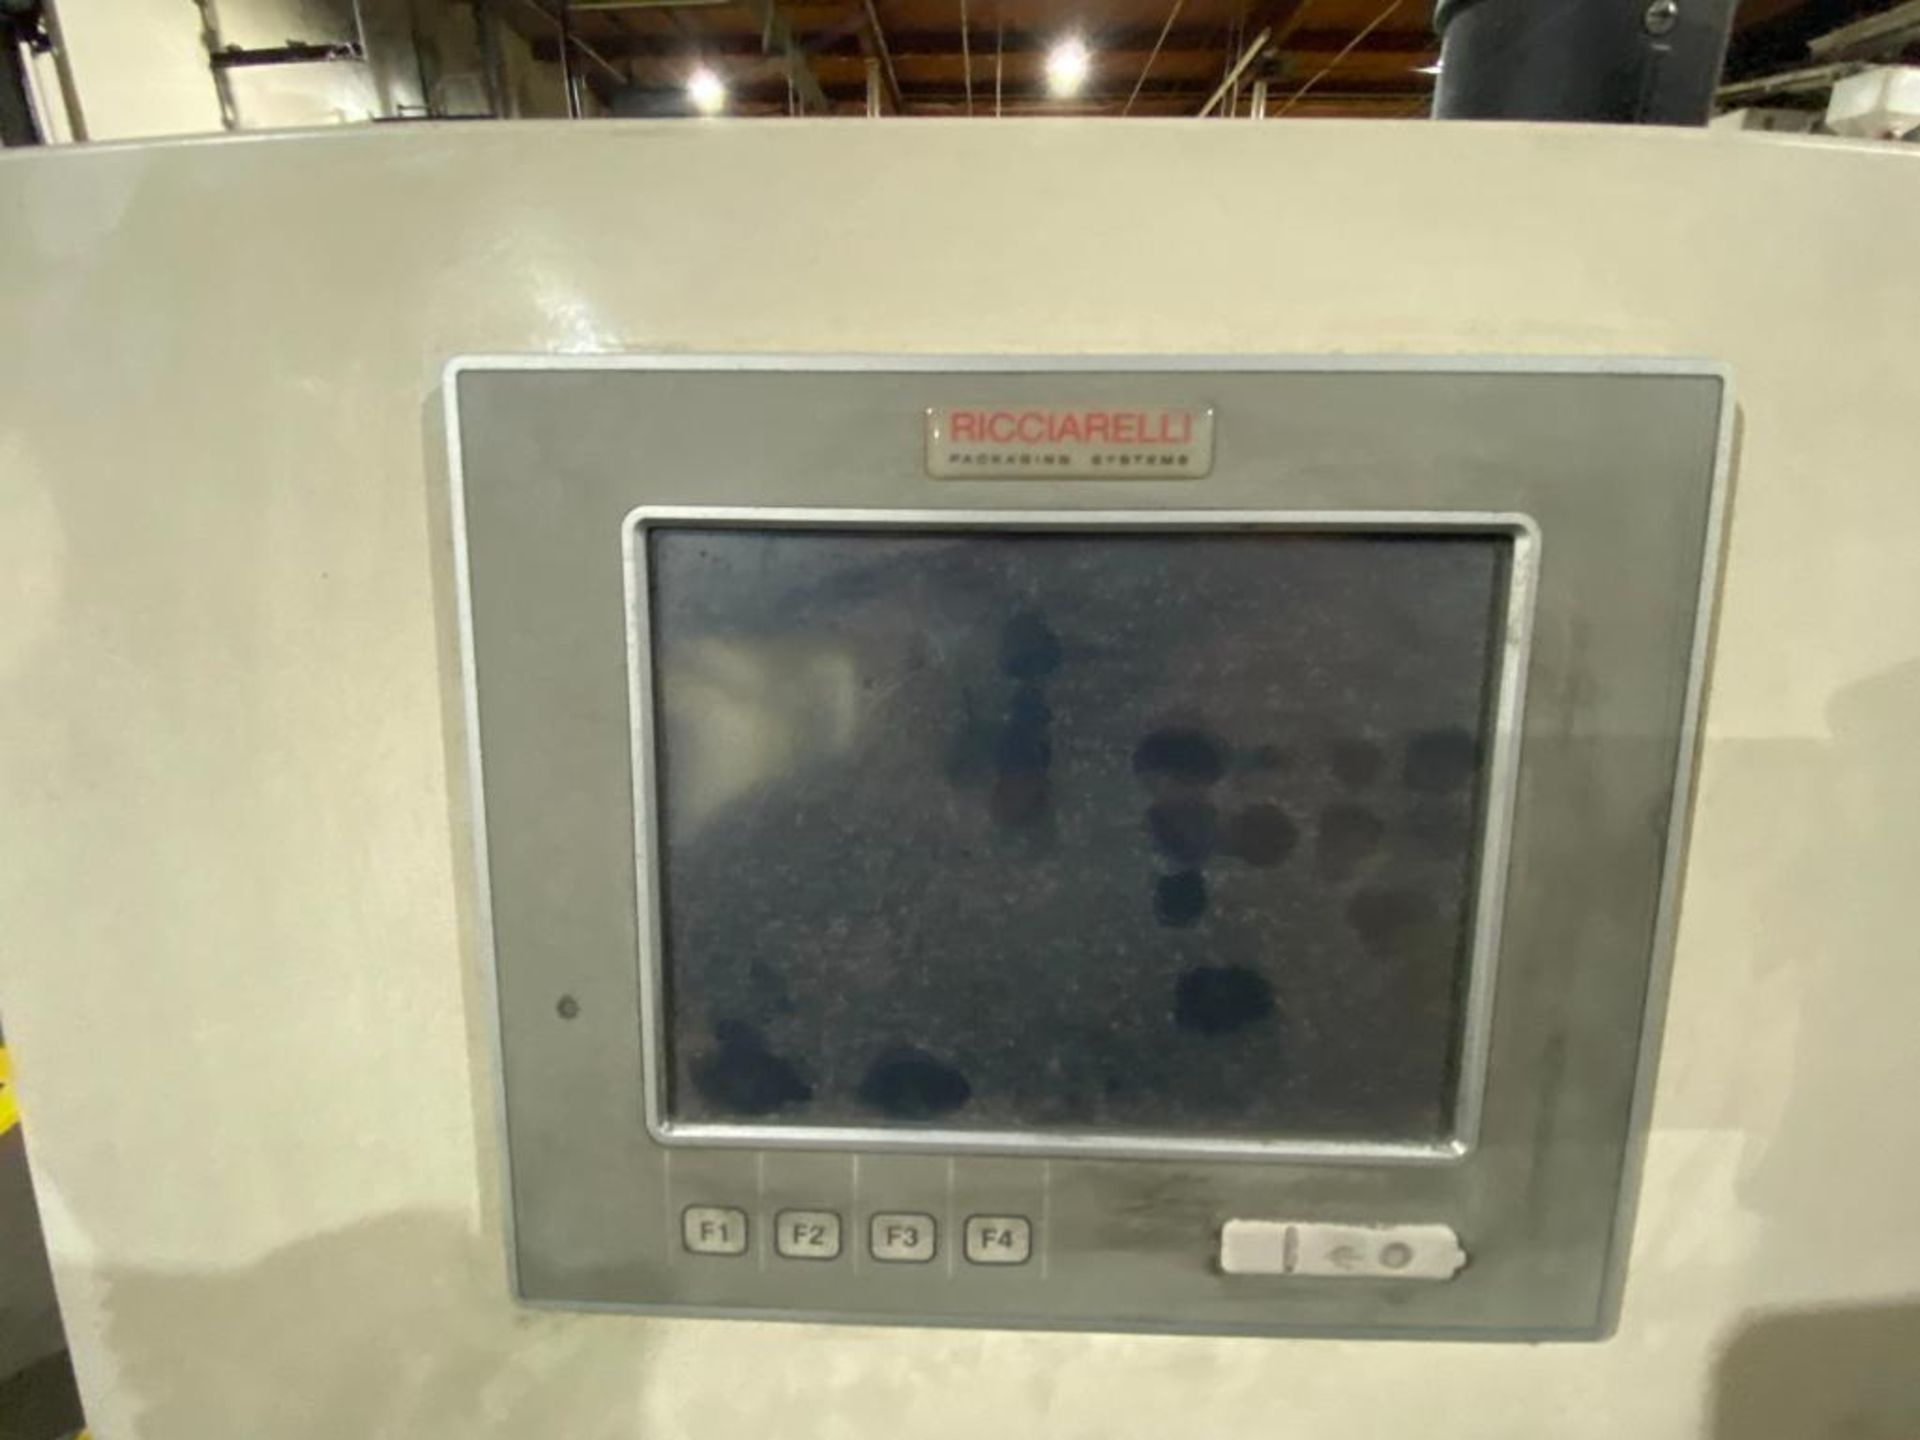 Ricciarelli high speed check weigher - Image 3 of 12